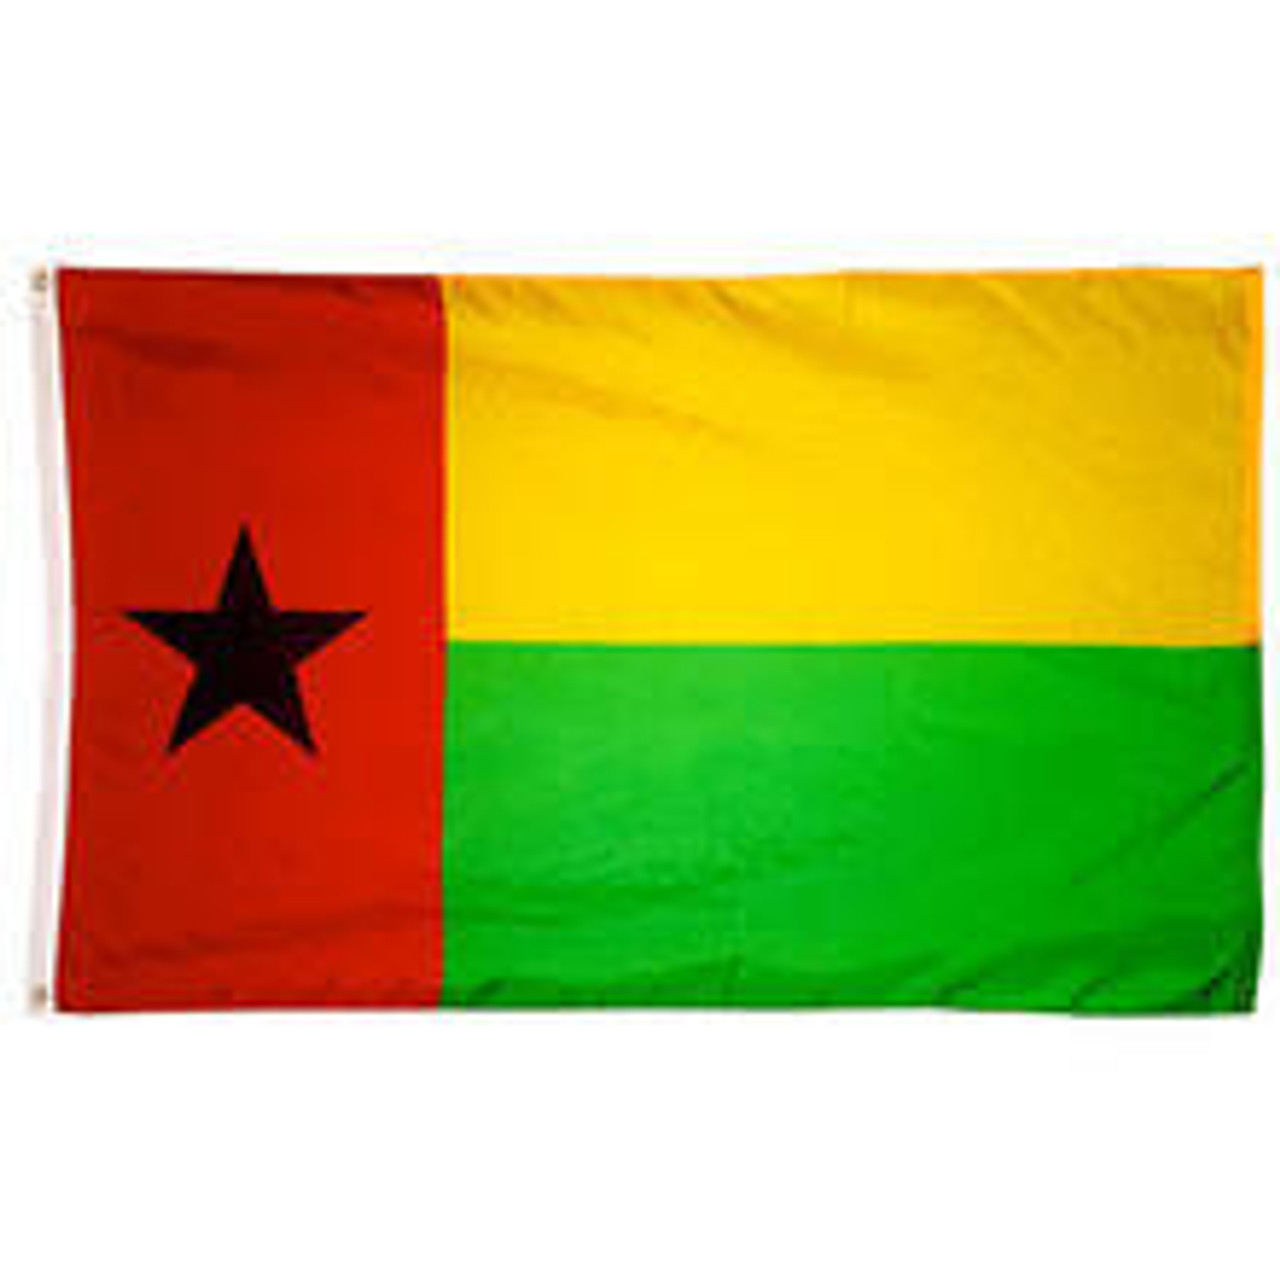 A Guinea-Bissau Flag made of nylon with lock stitching, polyester canvas heading, and brass grommets. Design is a red vertical rectangle taking up the left third with a black star emblem in the middle and two horizontal yellow and green rectangles taking up the rest.